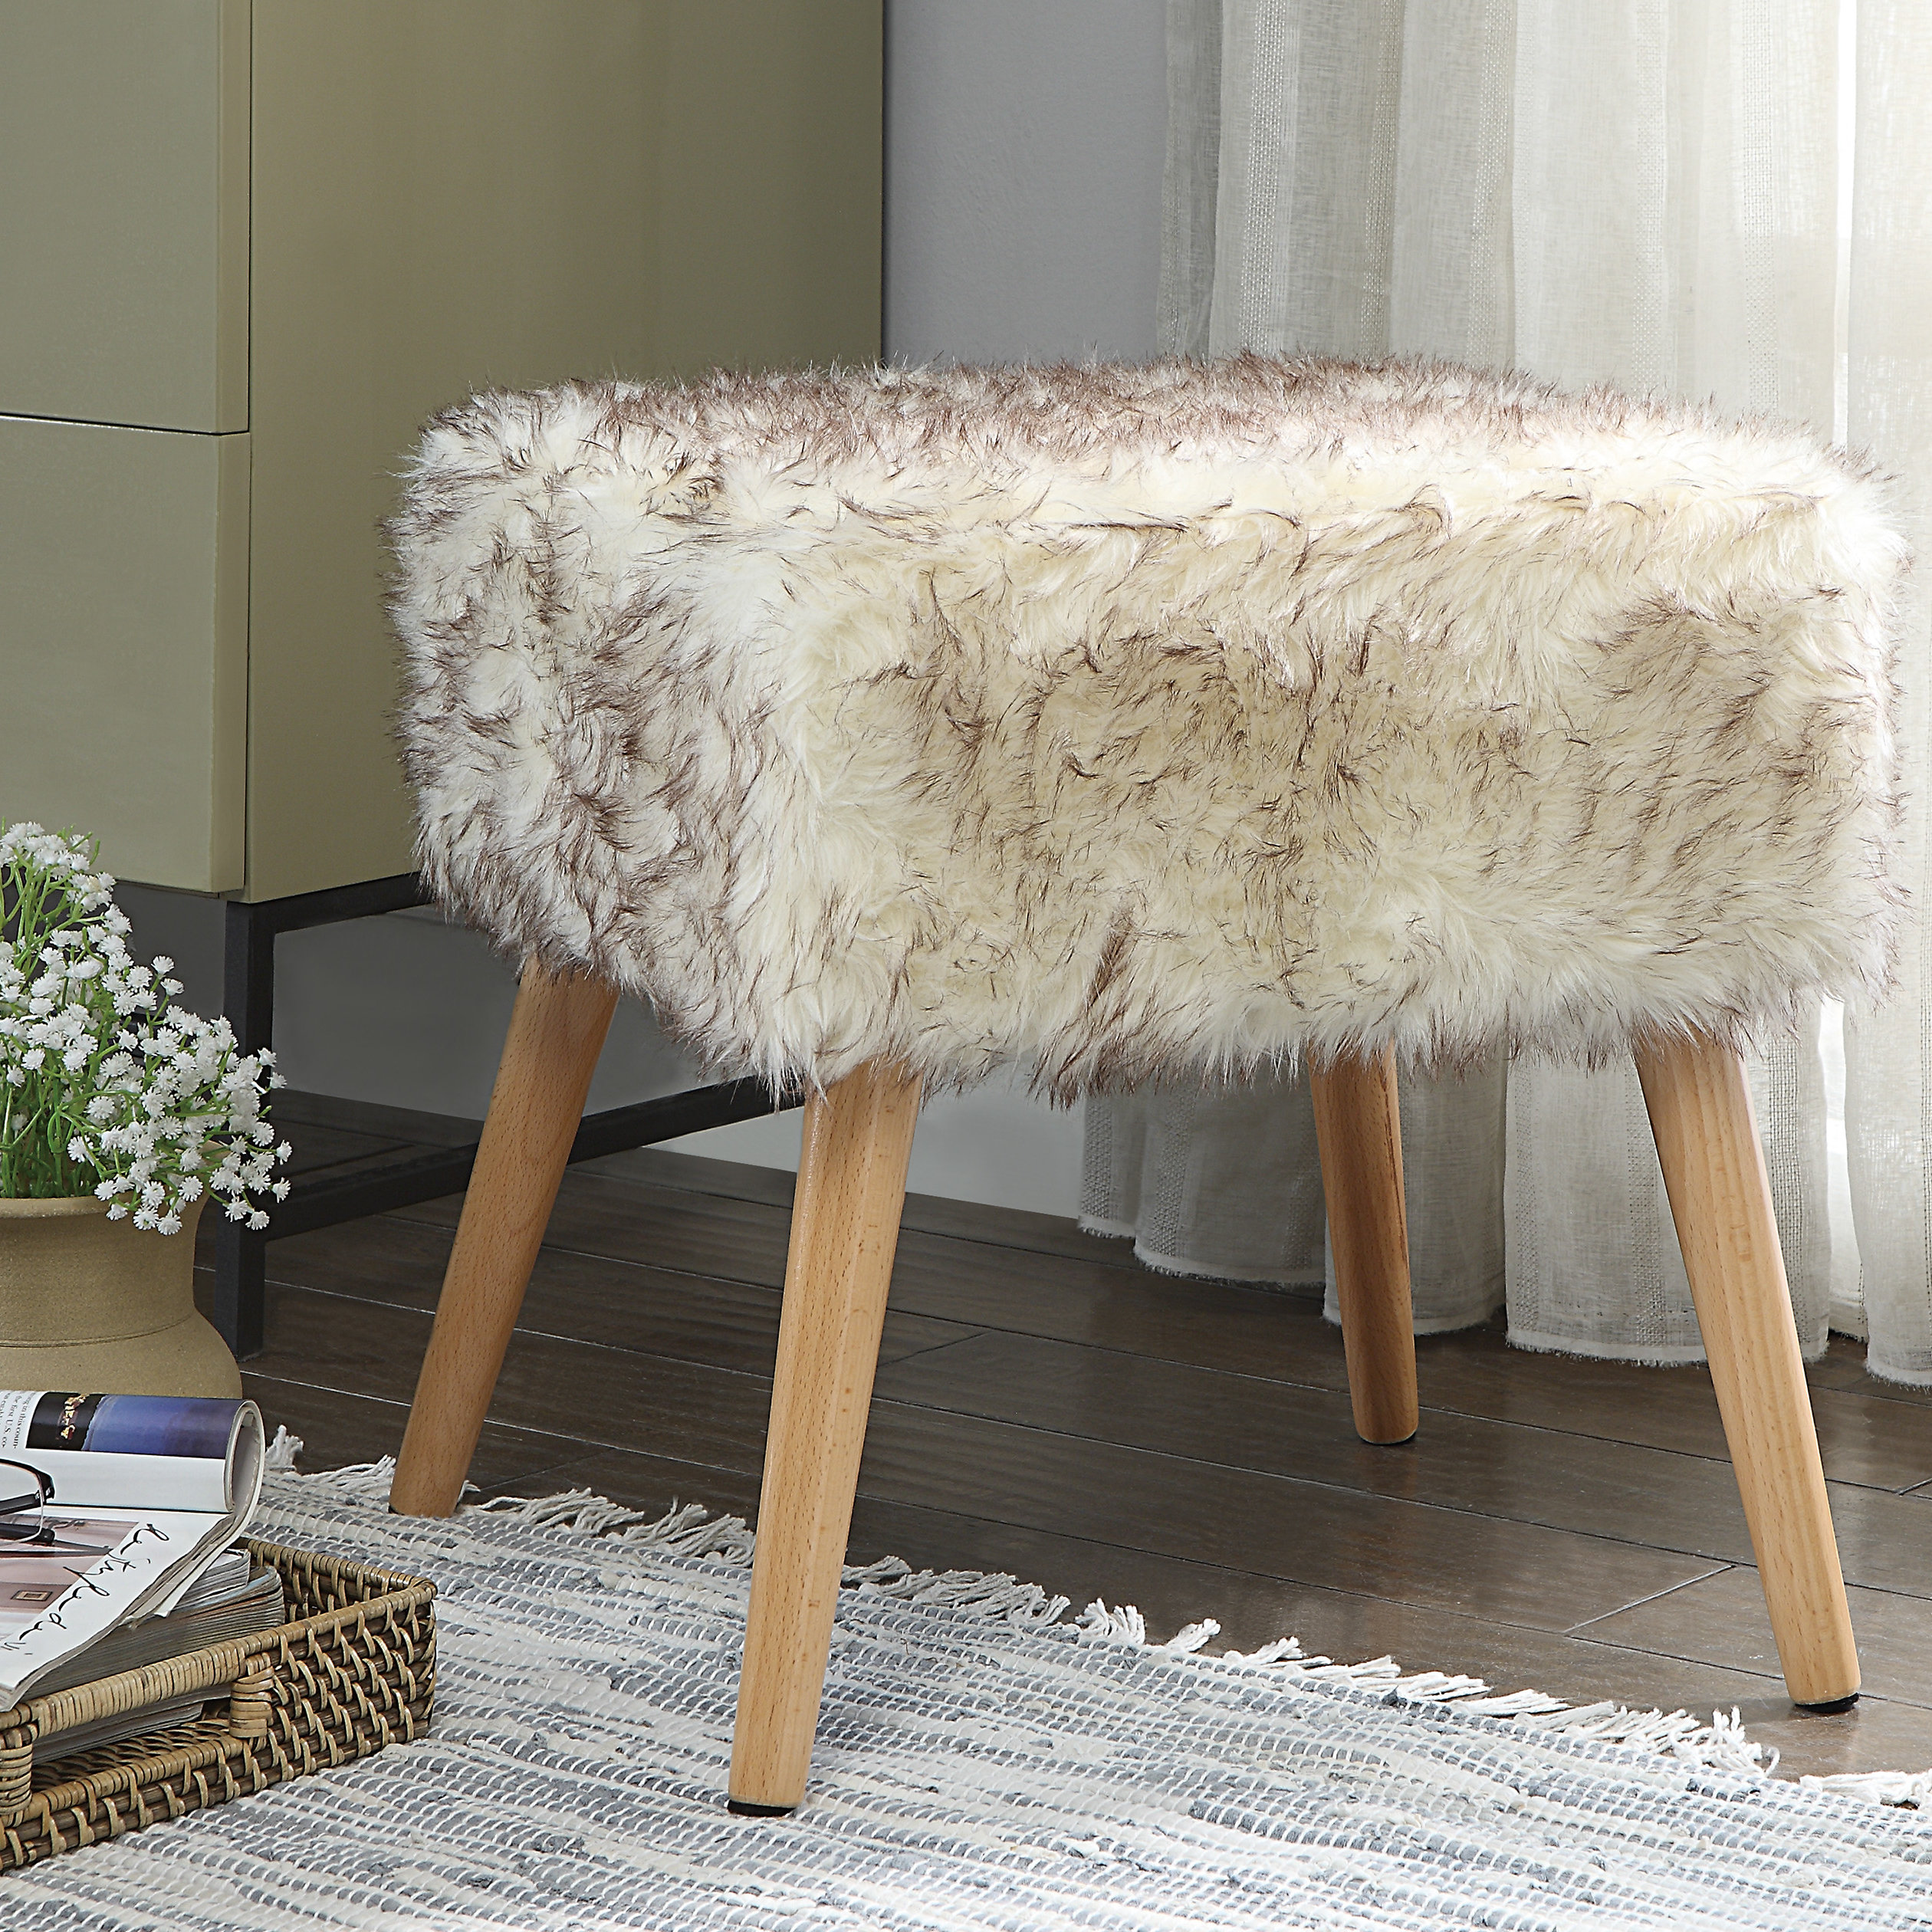 dukes chic faux fur vanity stool duke accent table pottery barn piece coffee set west elm design services homesense lamps real wood flooring end tables with storage space chinese